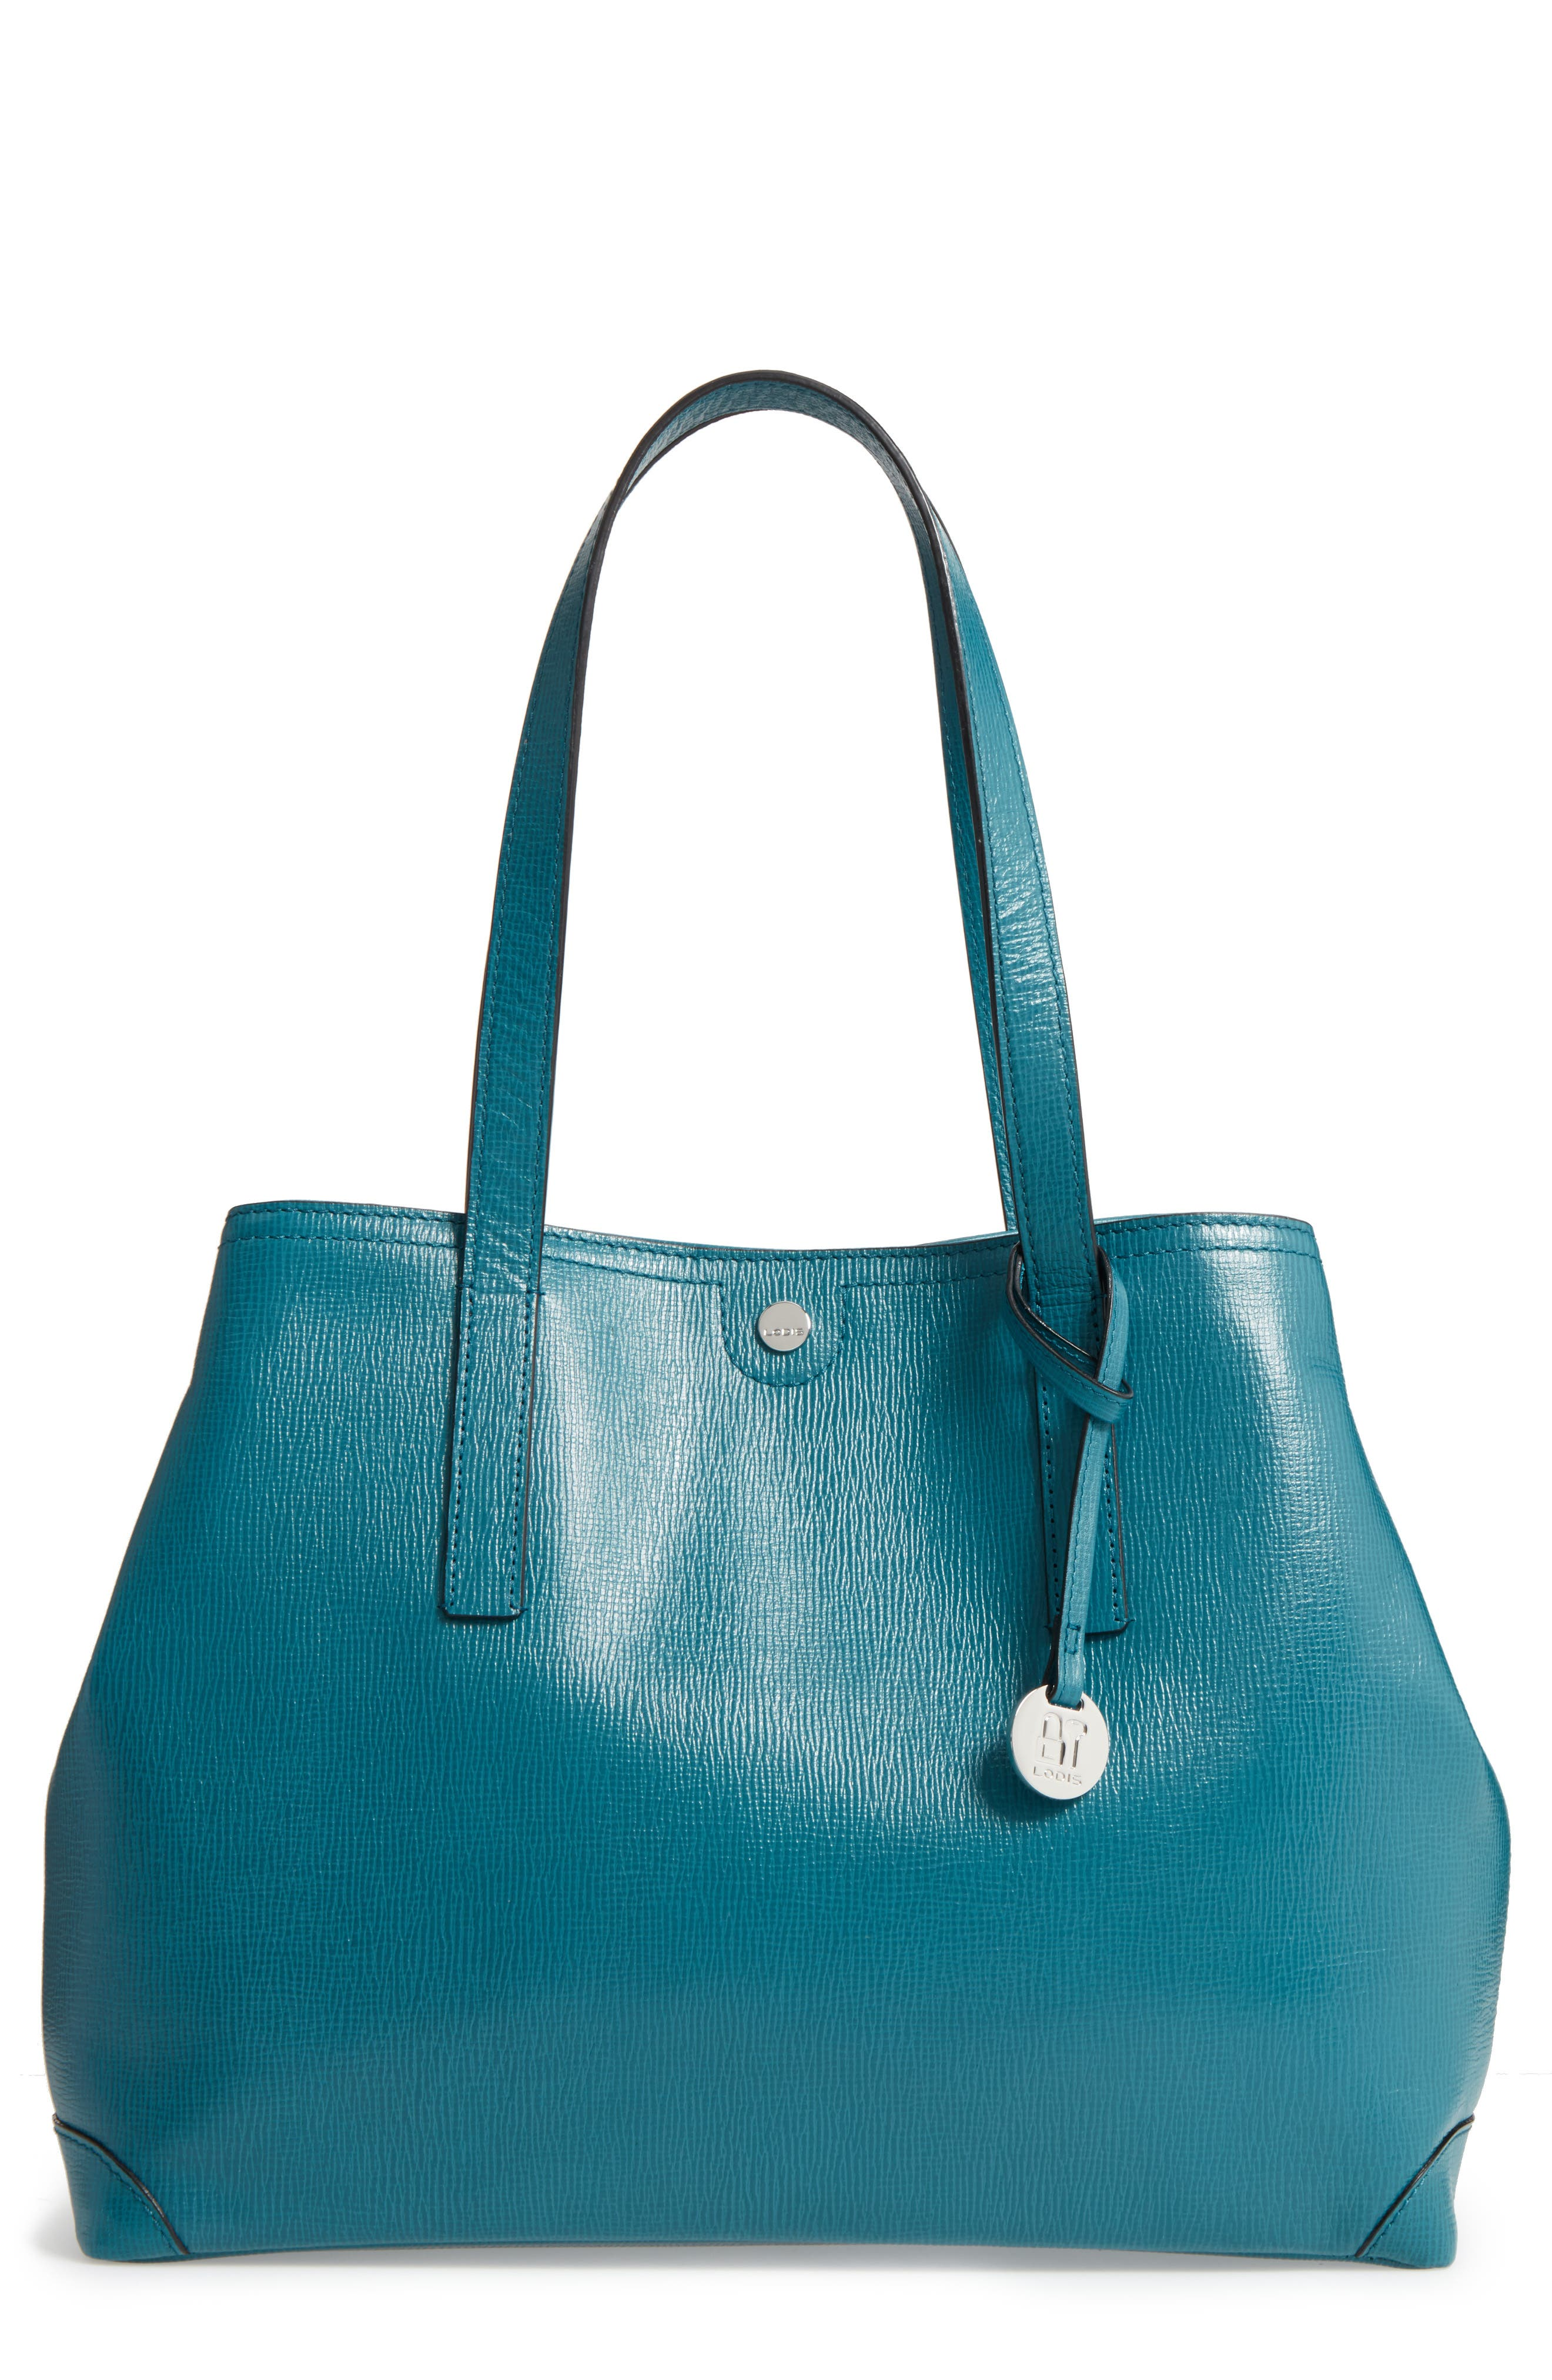 Main Image - Lodis Business Chic Louisa RFID-Protected Leather Tote